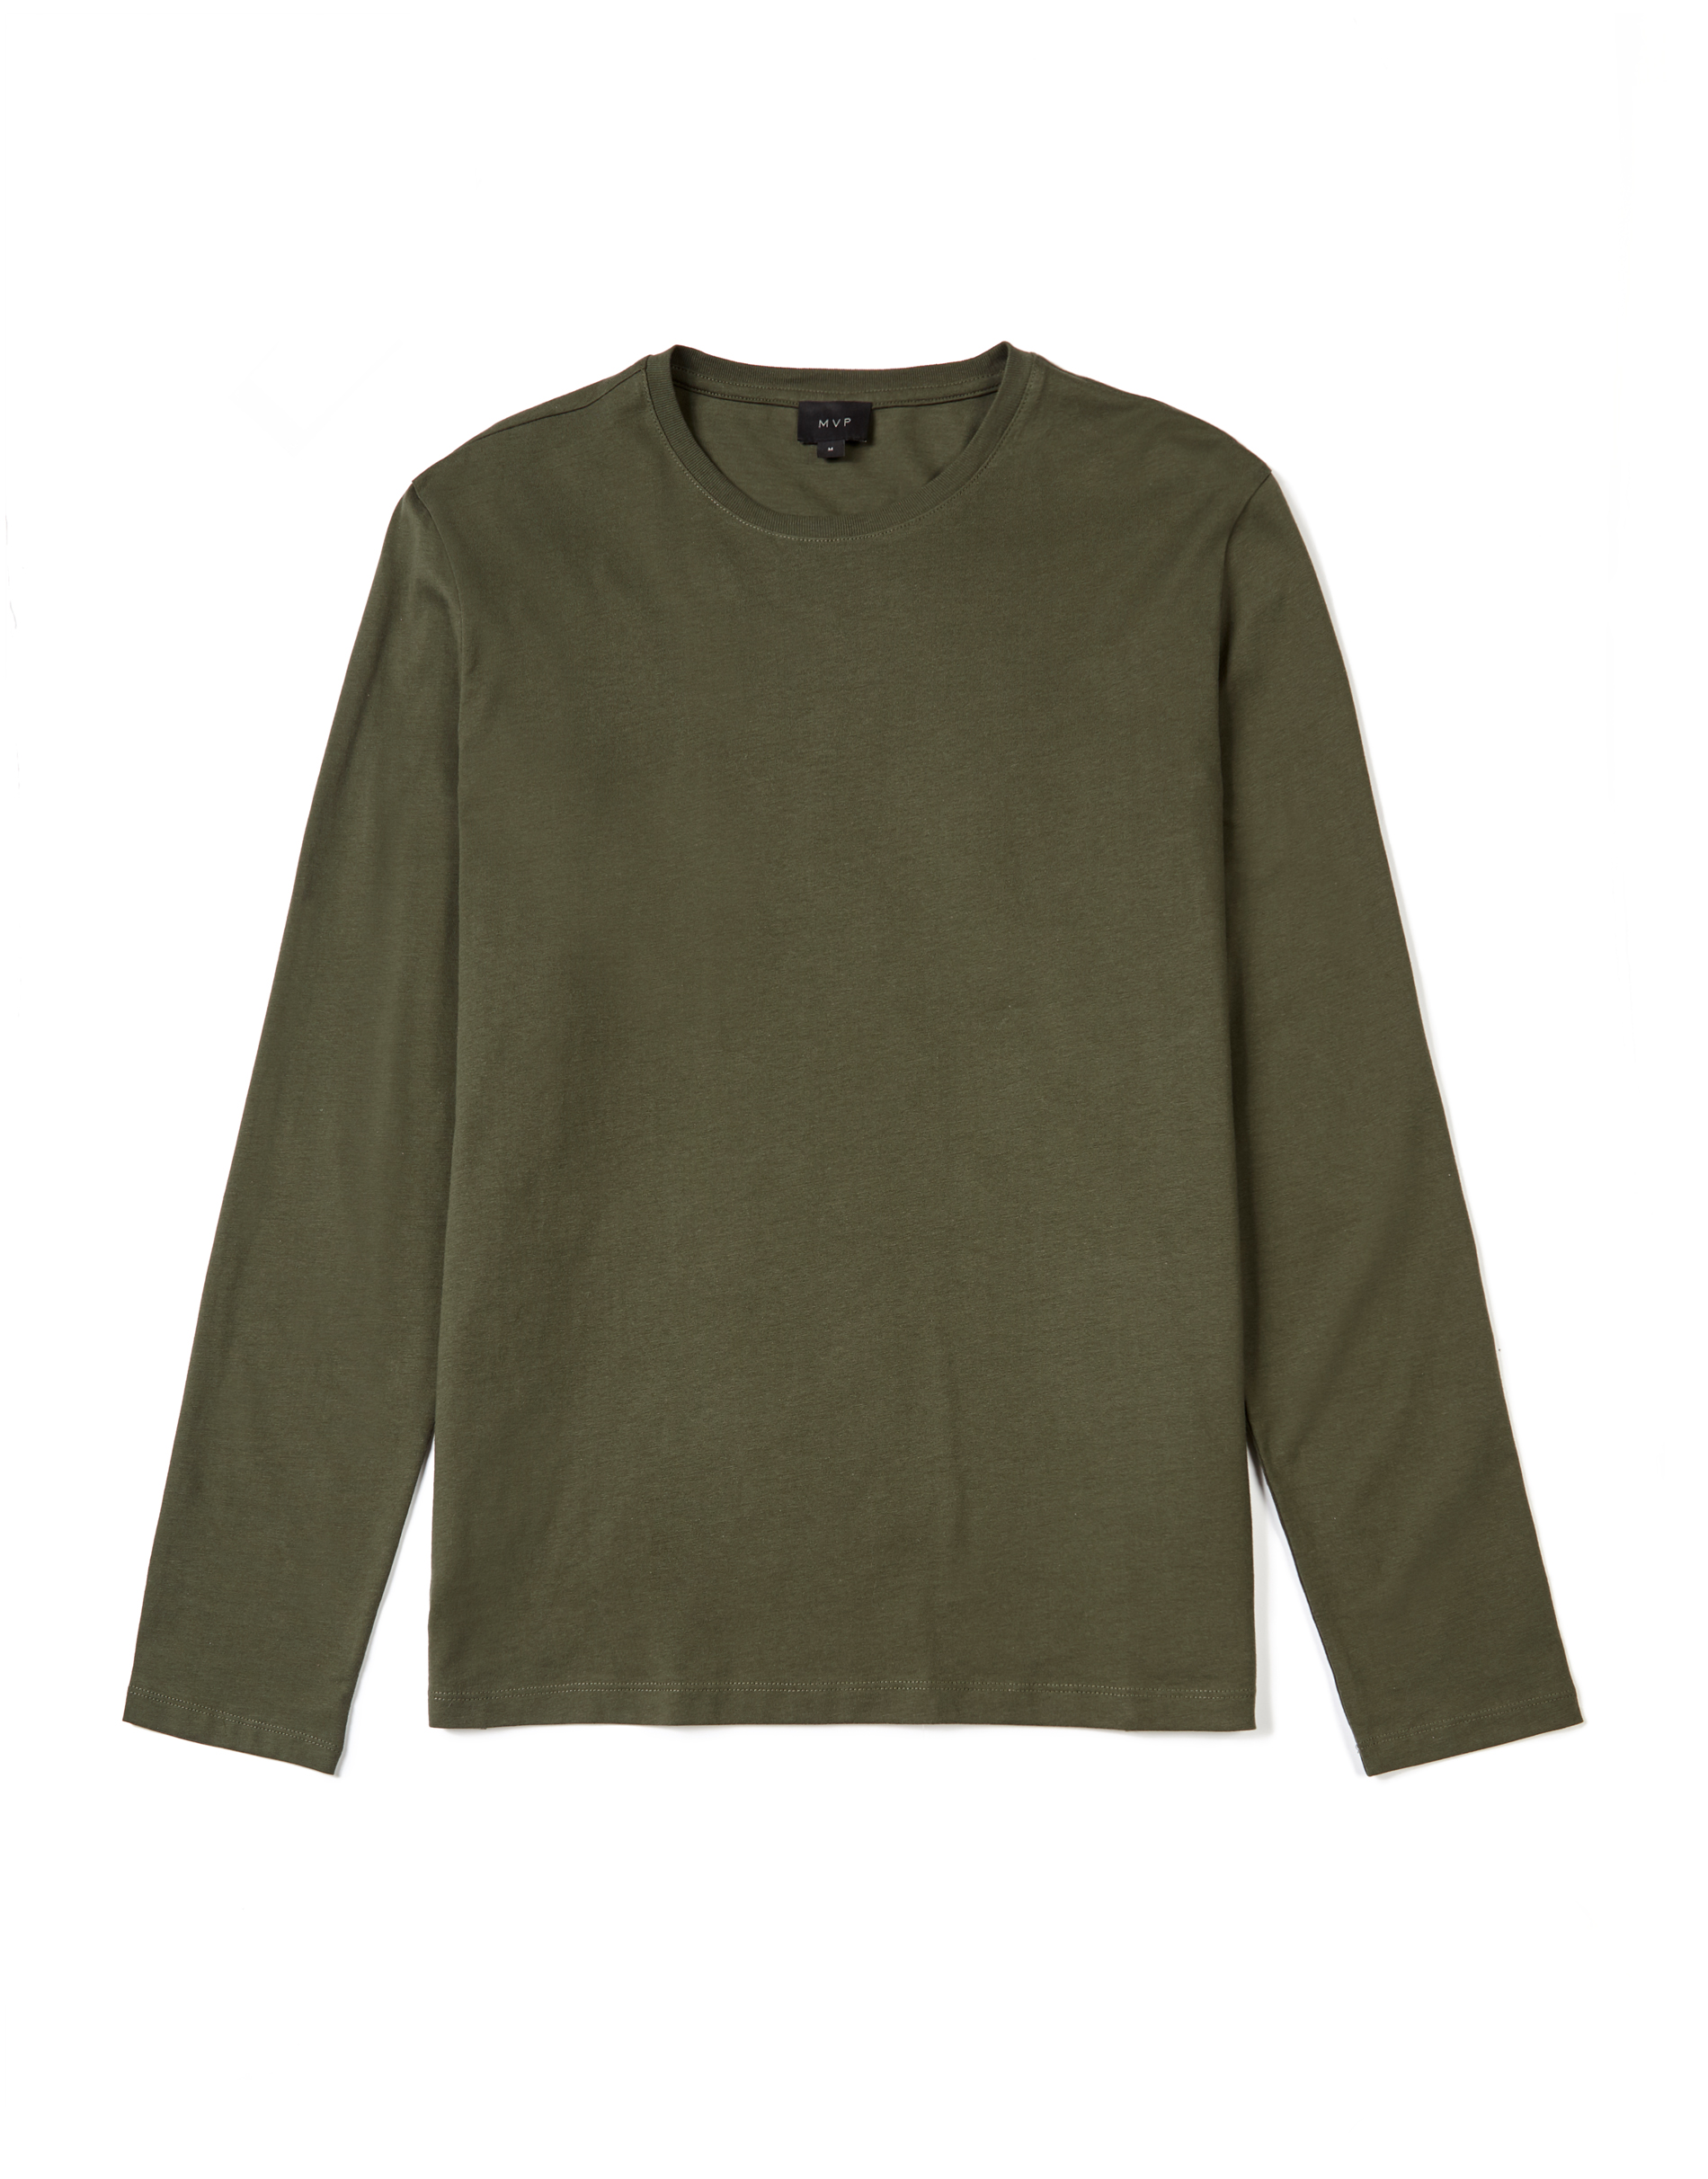 MVP Ashfield Long Sleeve Crew Neck T-shirt - Moss Green